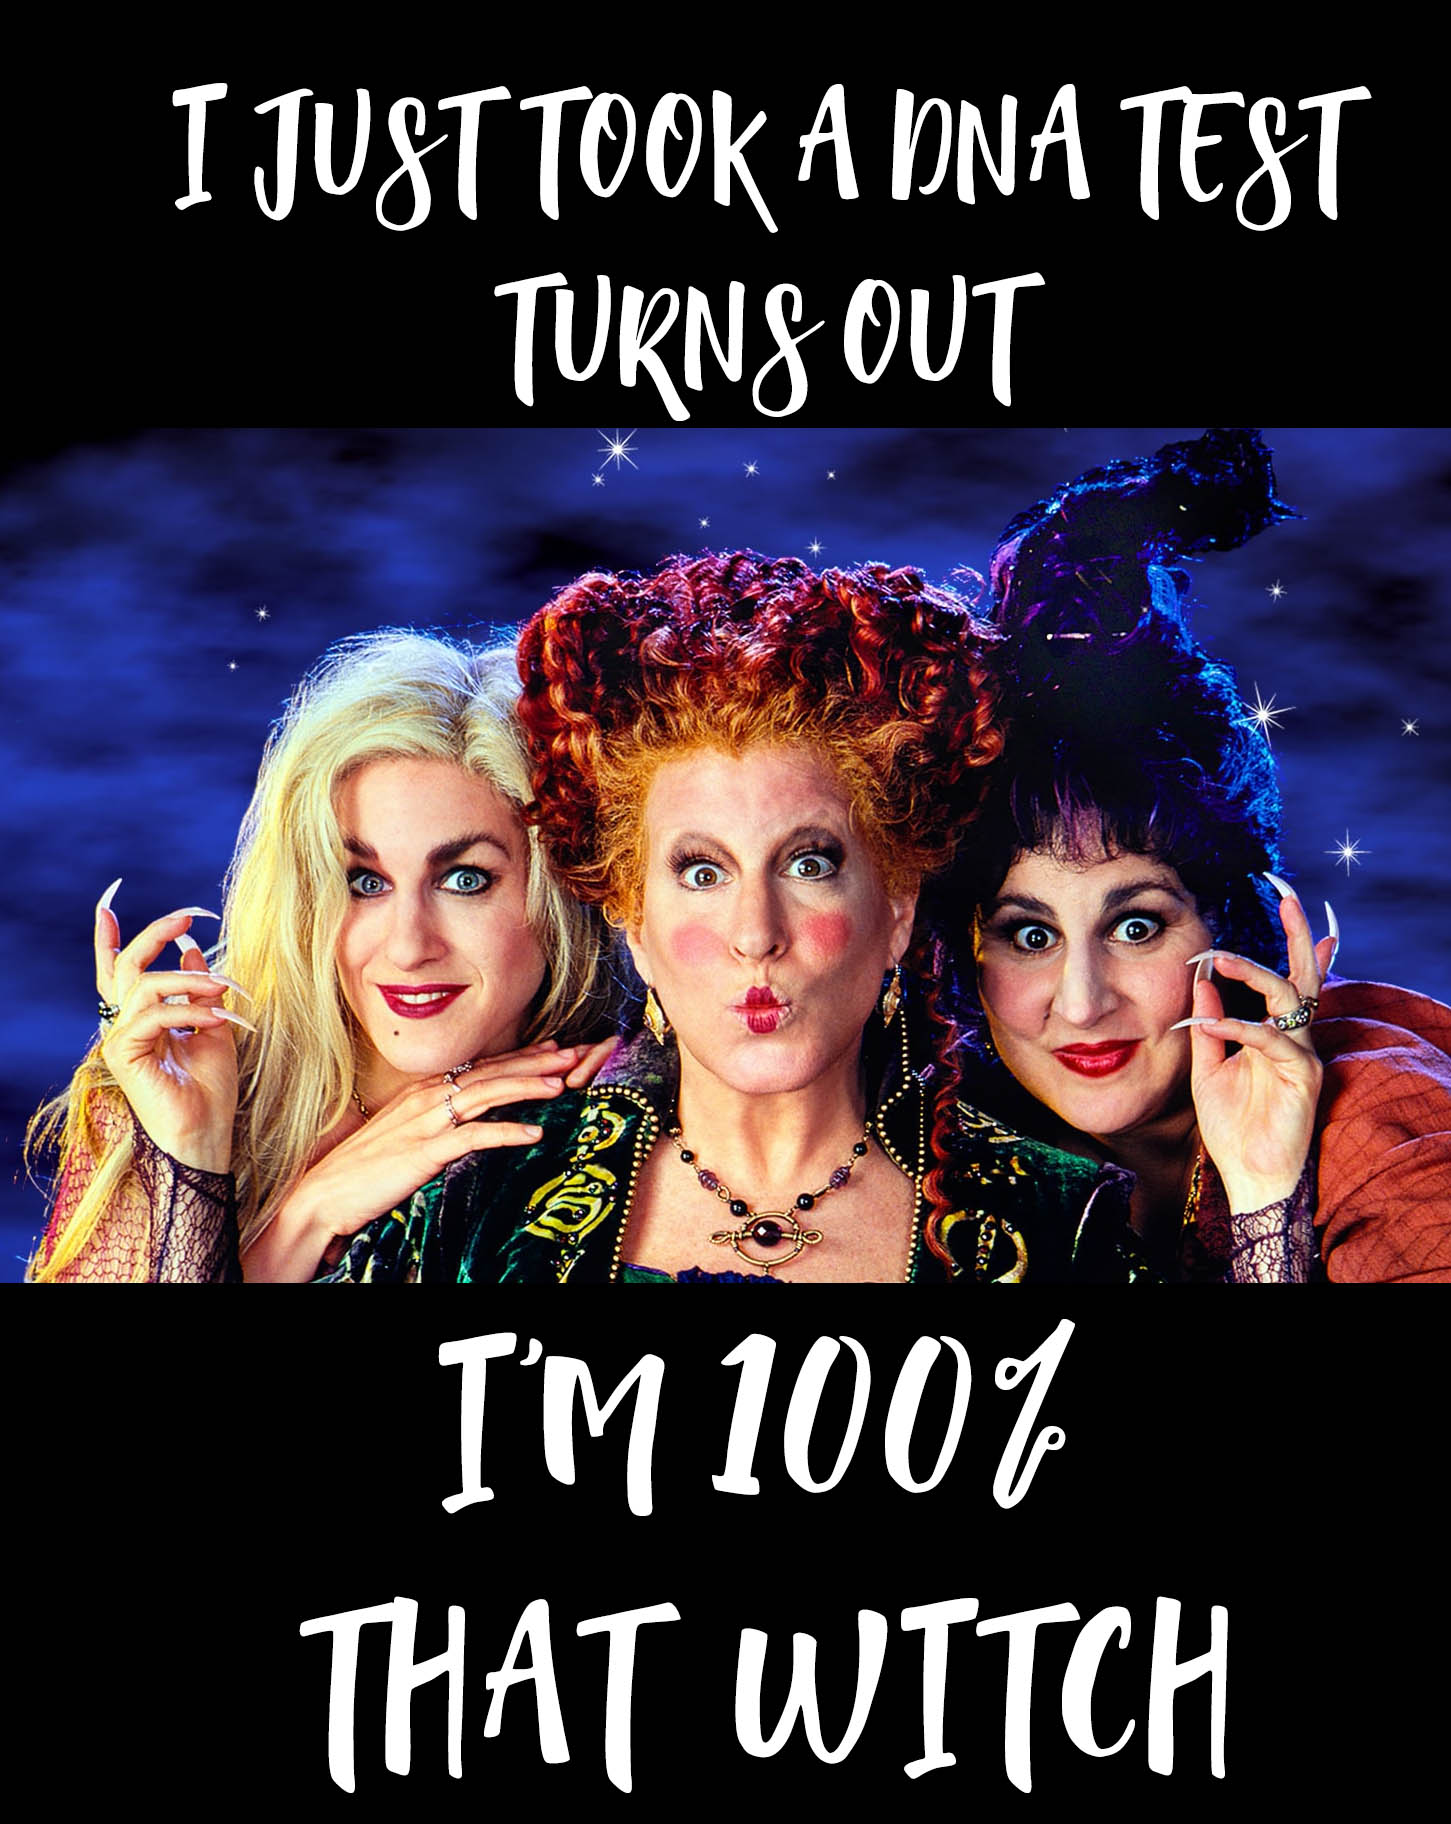 Halloween Memes Hocus Pocus I just took a DNA test turns out I'm 100% that witch - frostedblog.com Misty Nelson